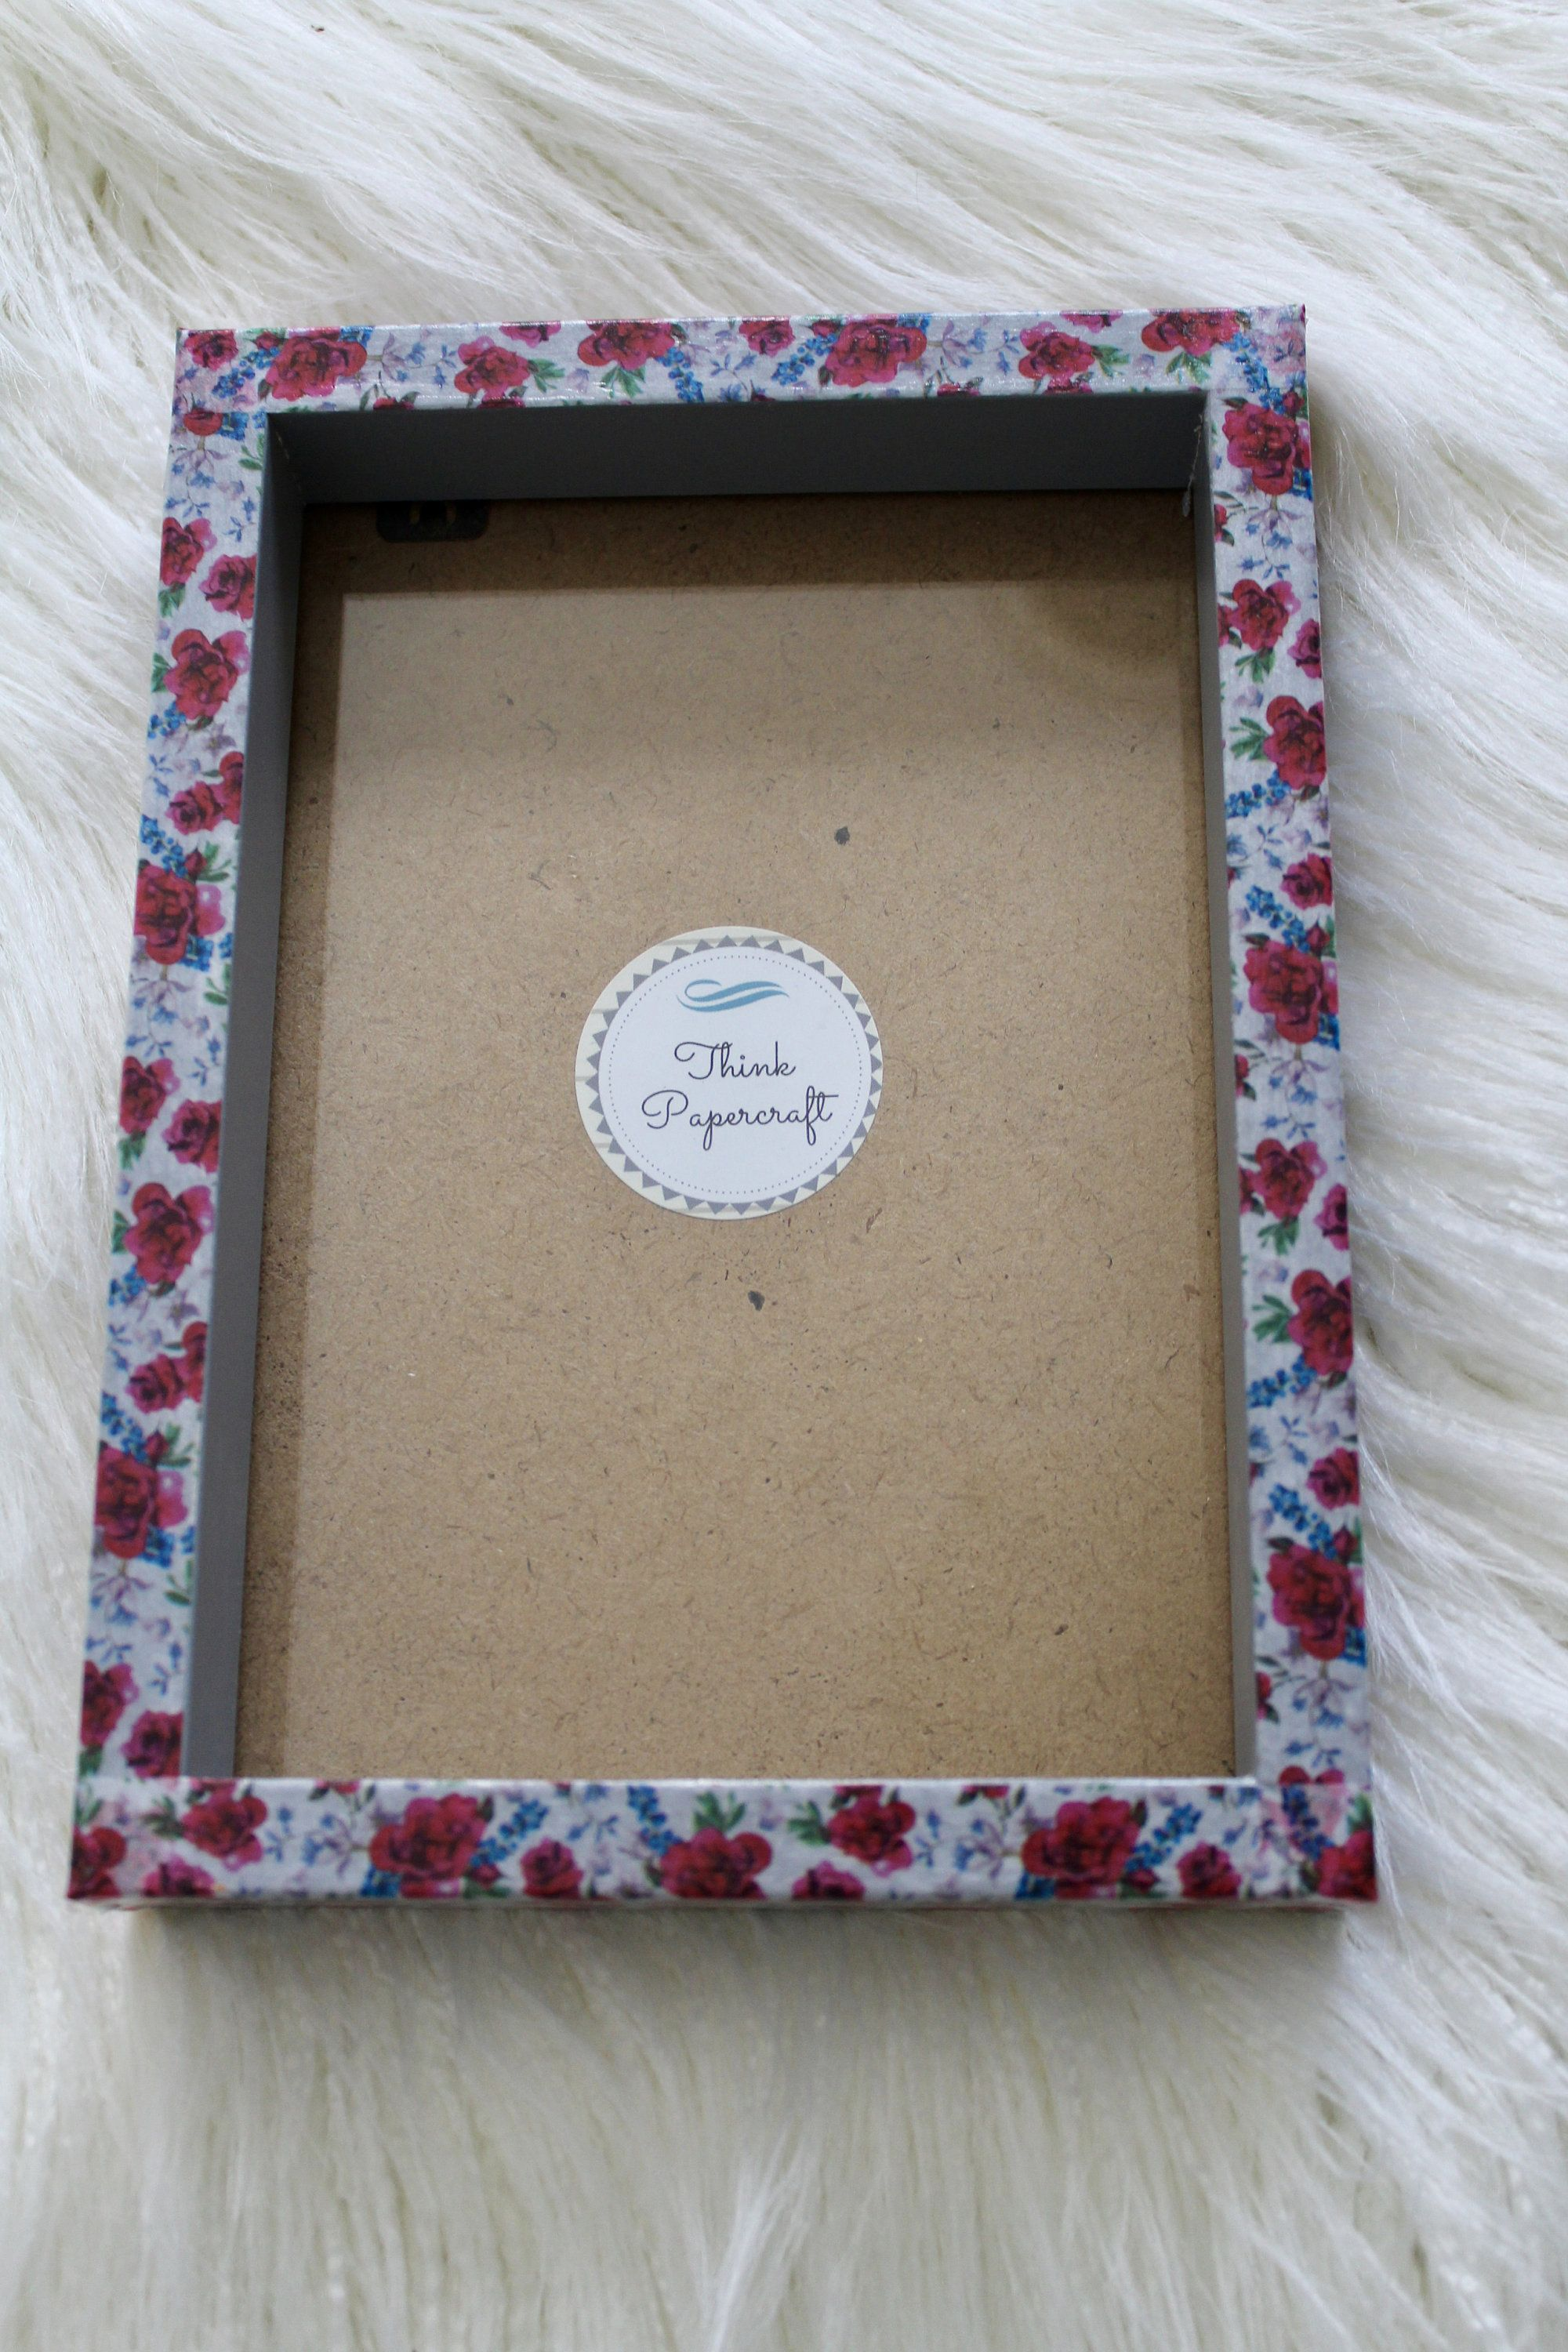 Red Flower Floral Decorated Photo Picture Frame 5x7 Inches 13x18 Cms Unique Mother S Day House Warming Birthday Or Gardener Gift Red Flowers House Warming Frame